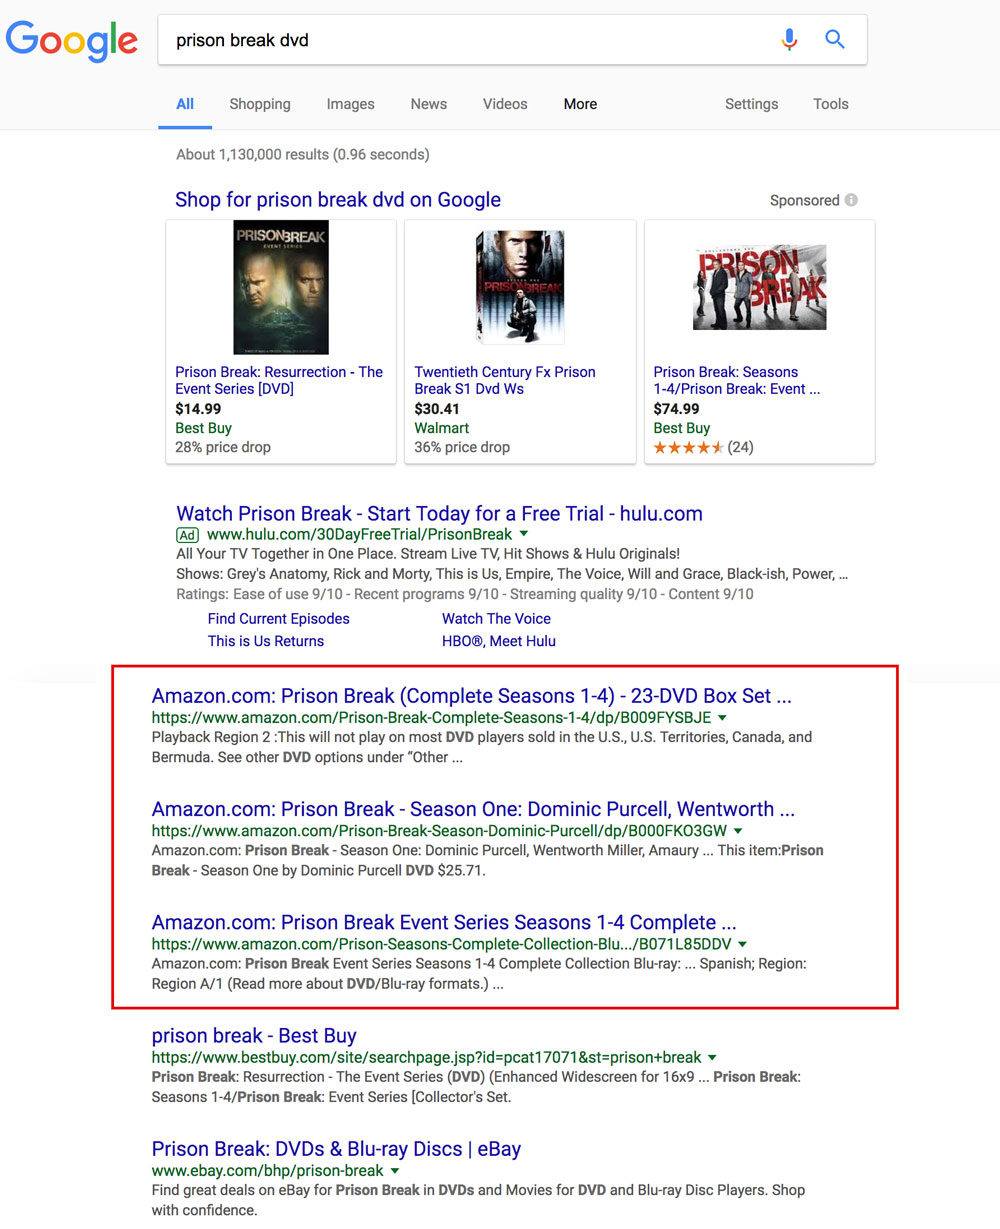 """Screenshot showing a google search for """"prison break dvd"""", with amazon results highlighted"""